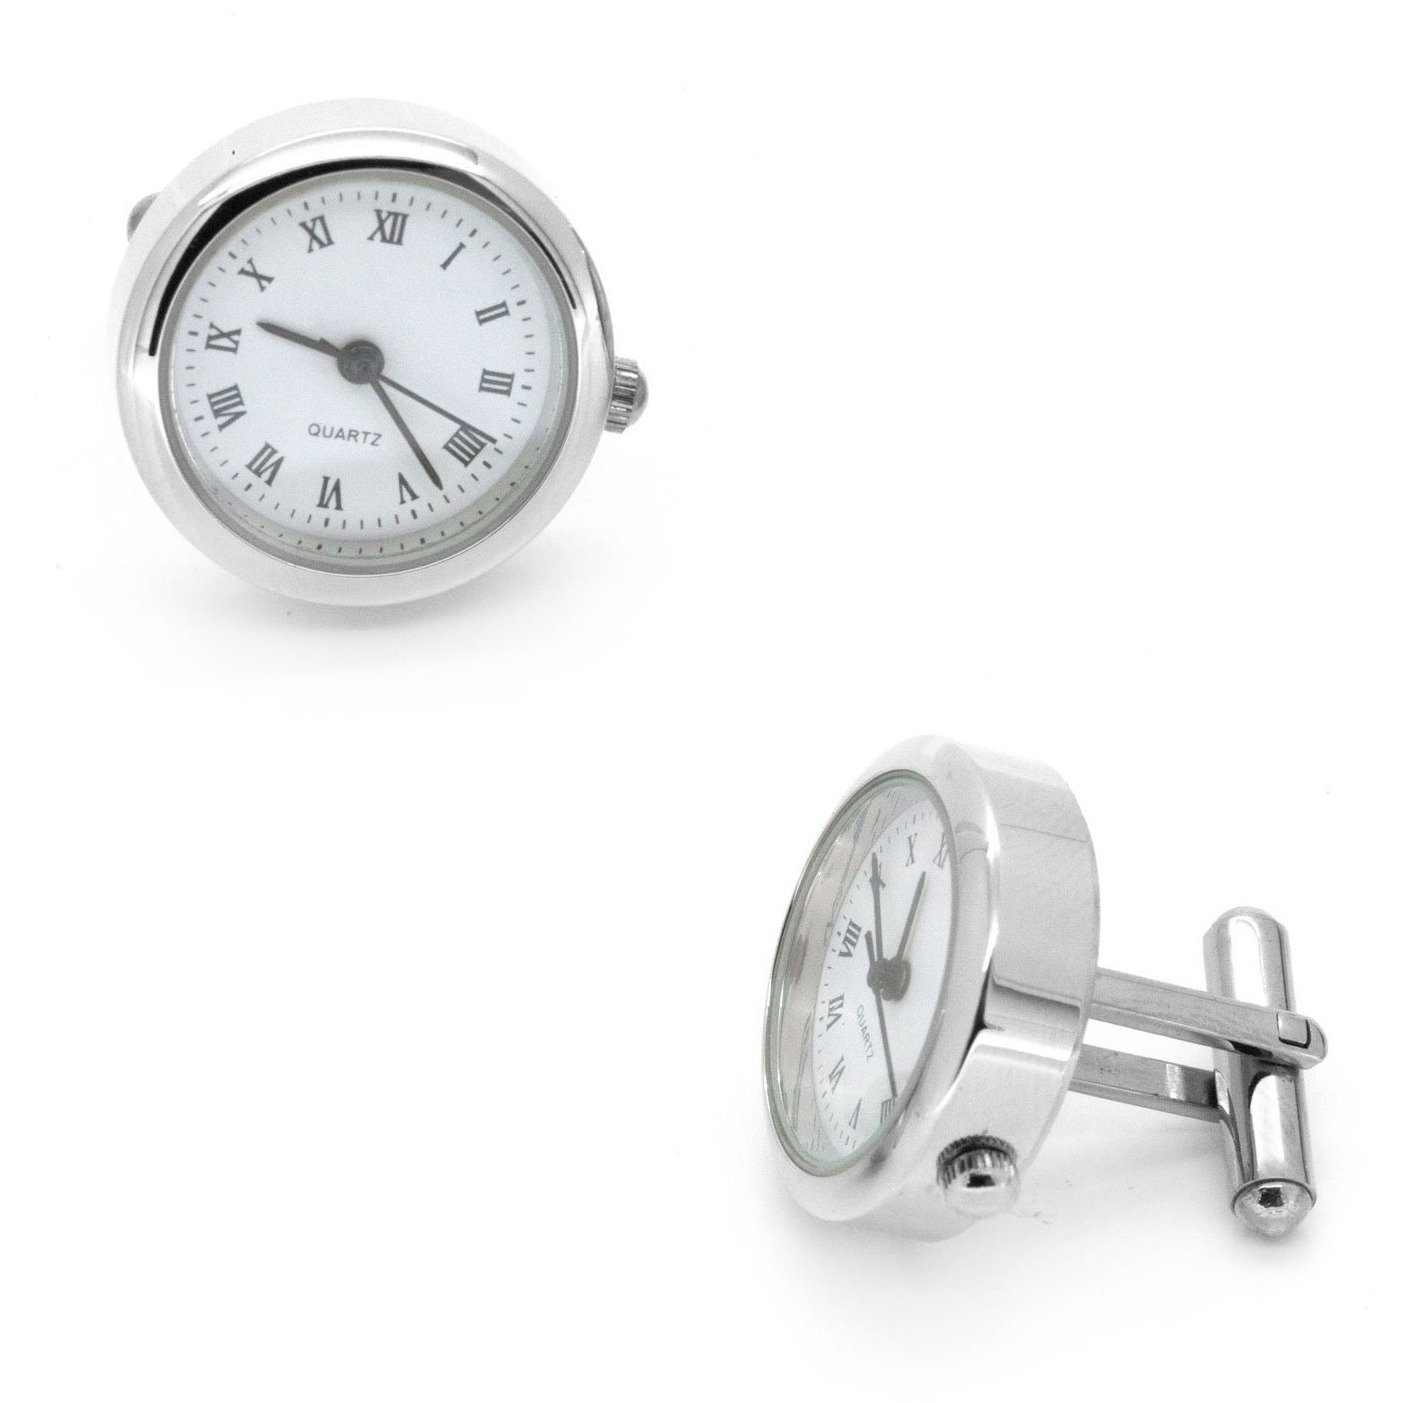 Round White Faced Working Clock Watch Cufflinks, Novelty Cufflinks, Cuffed.com.au, CL5550, $59.00